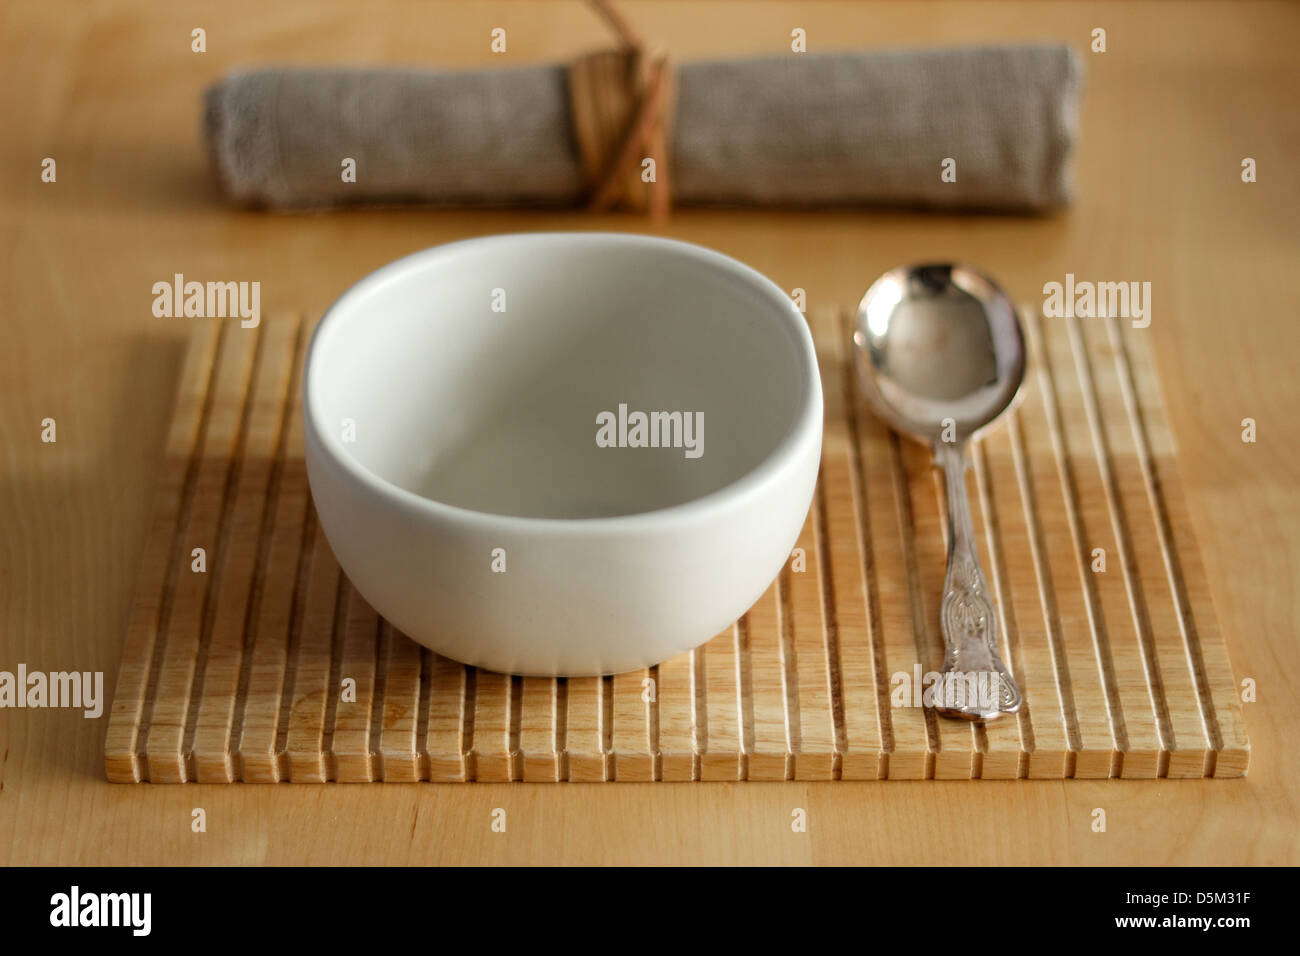 Empty bowl with spoon and napkin - Stock Image